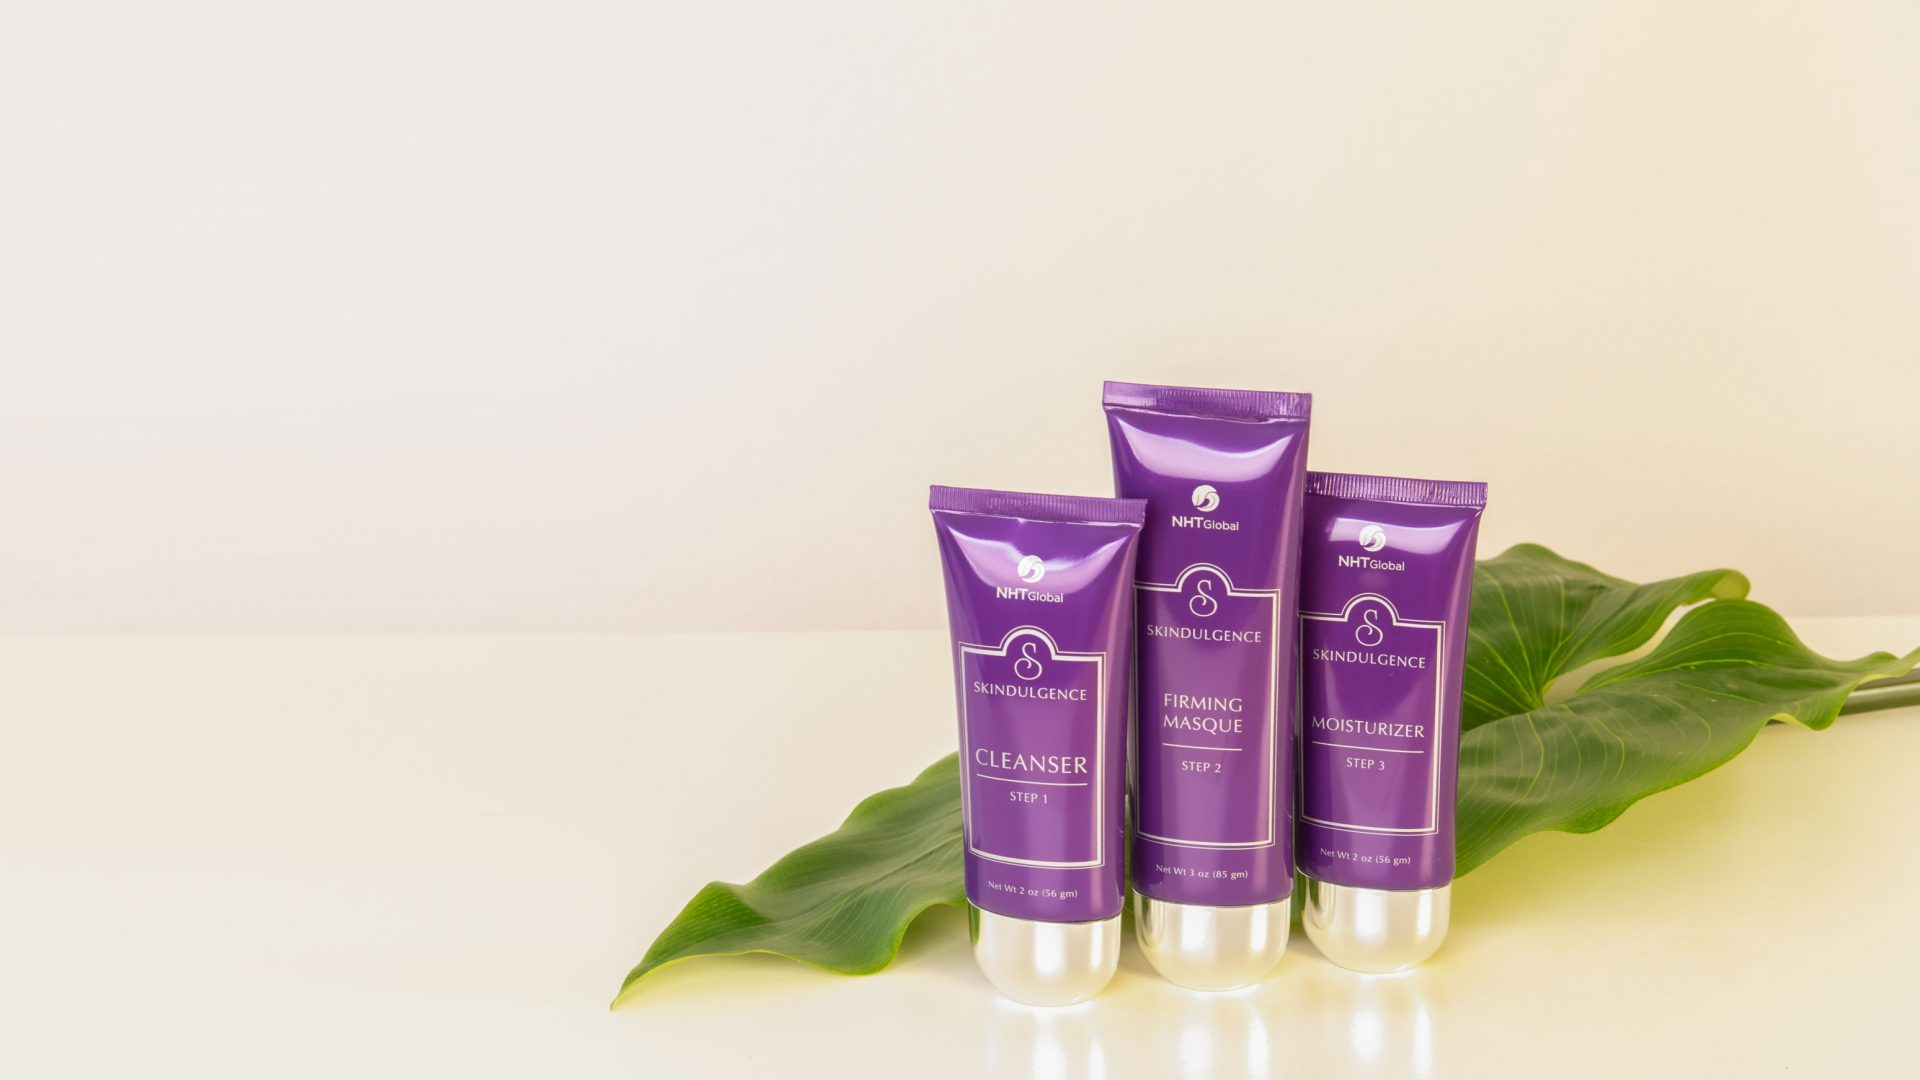 Skindulgence® 30 Minute Firming System